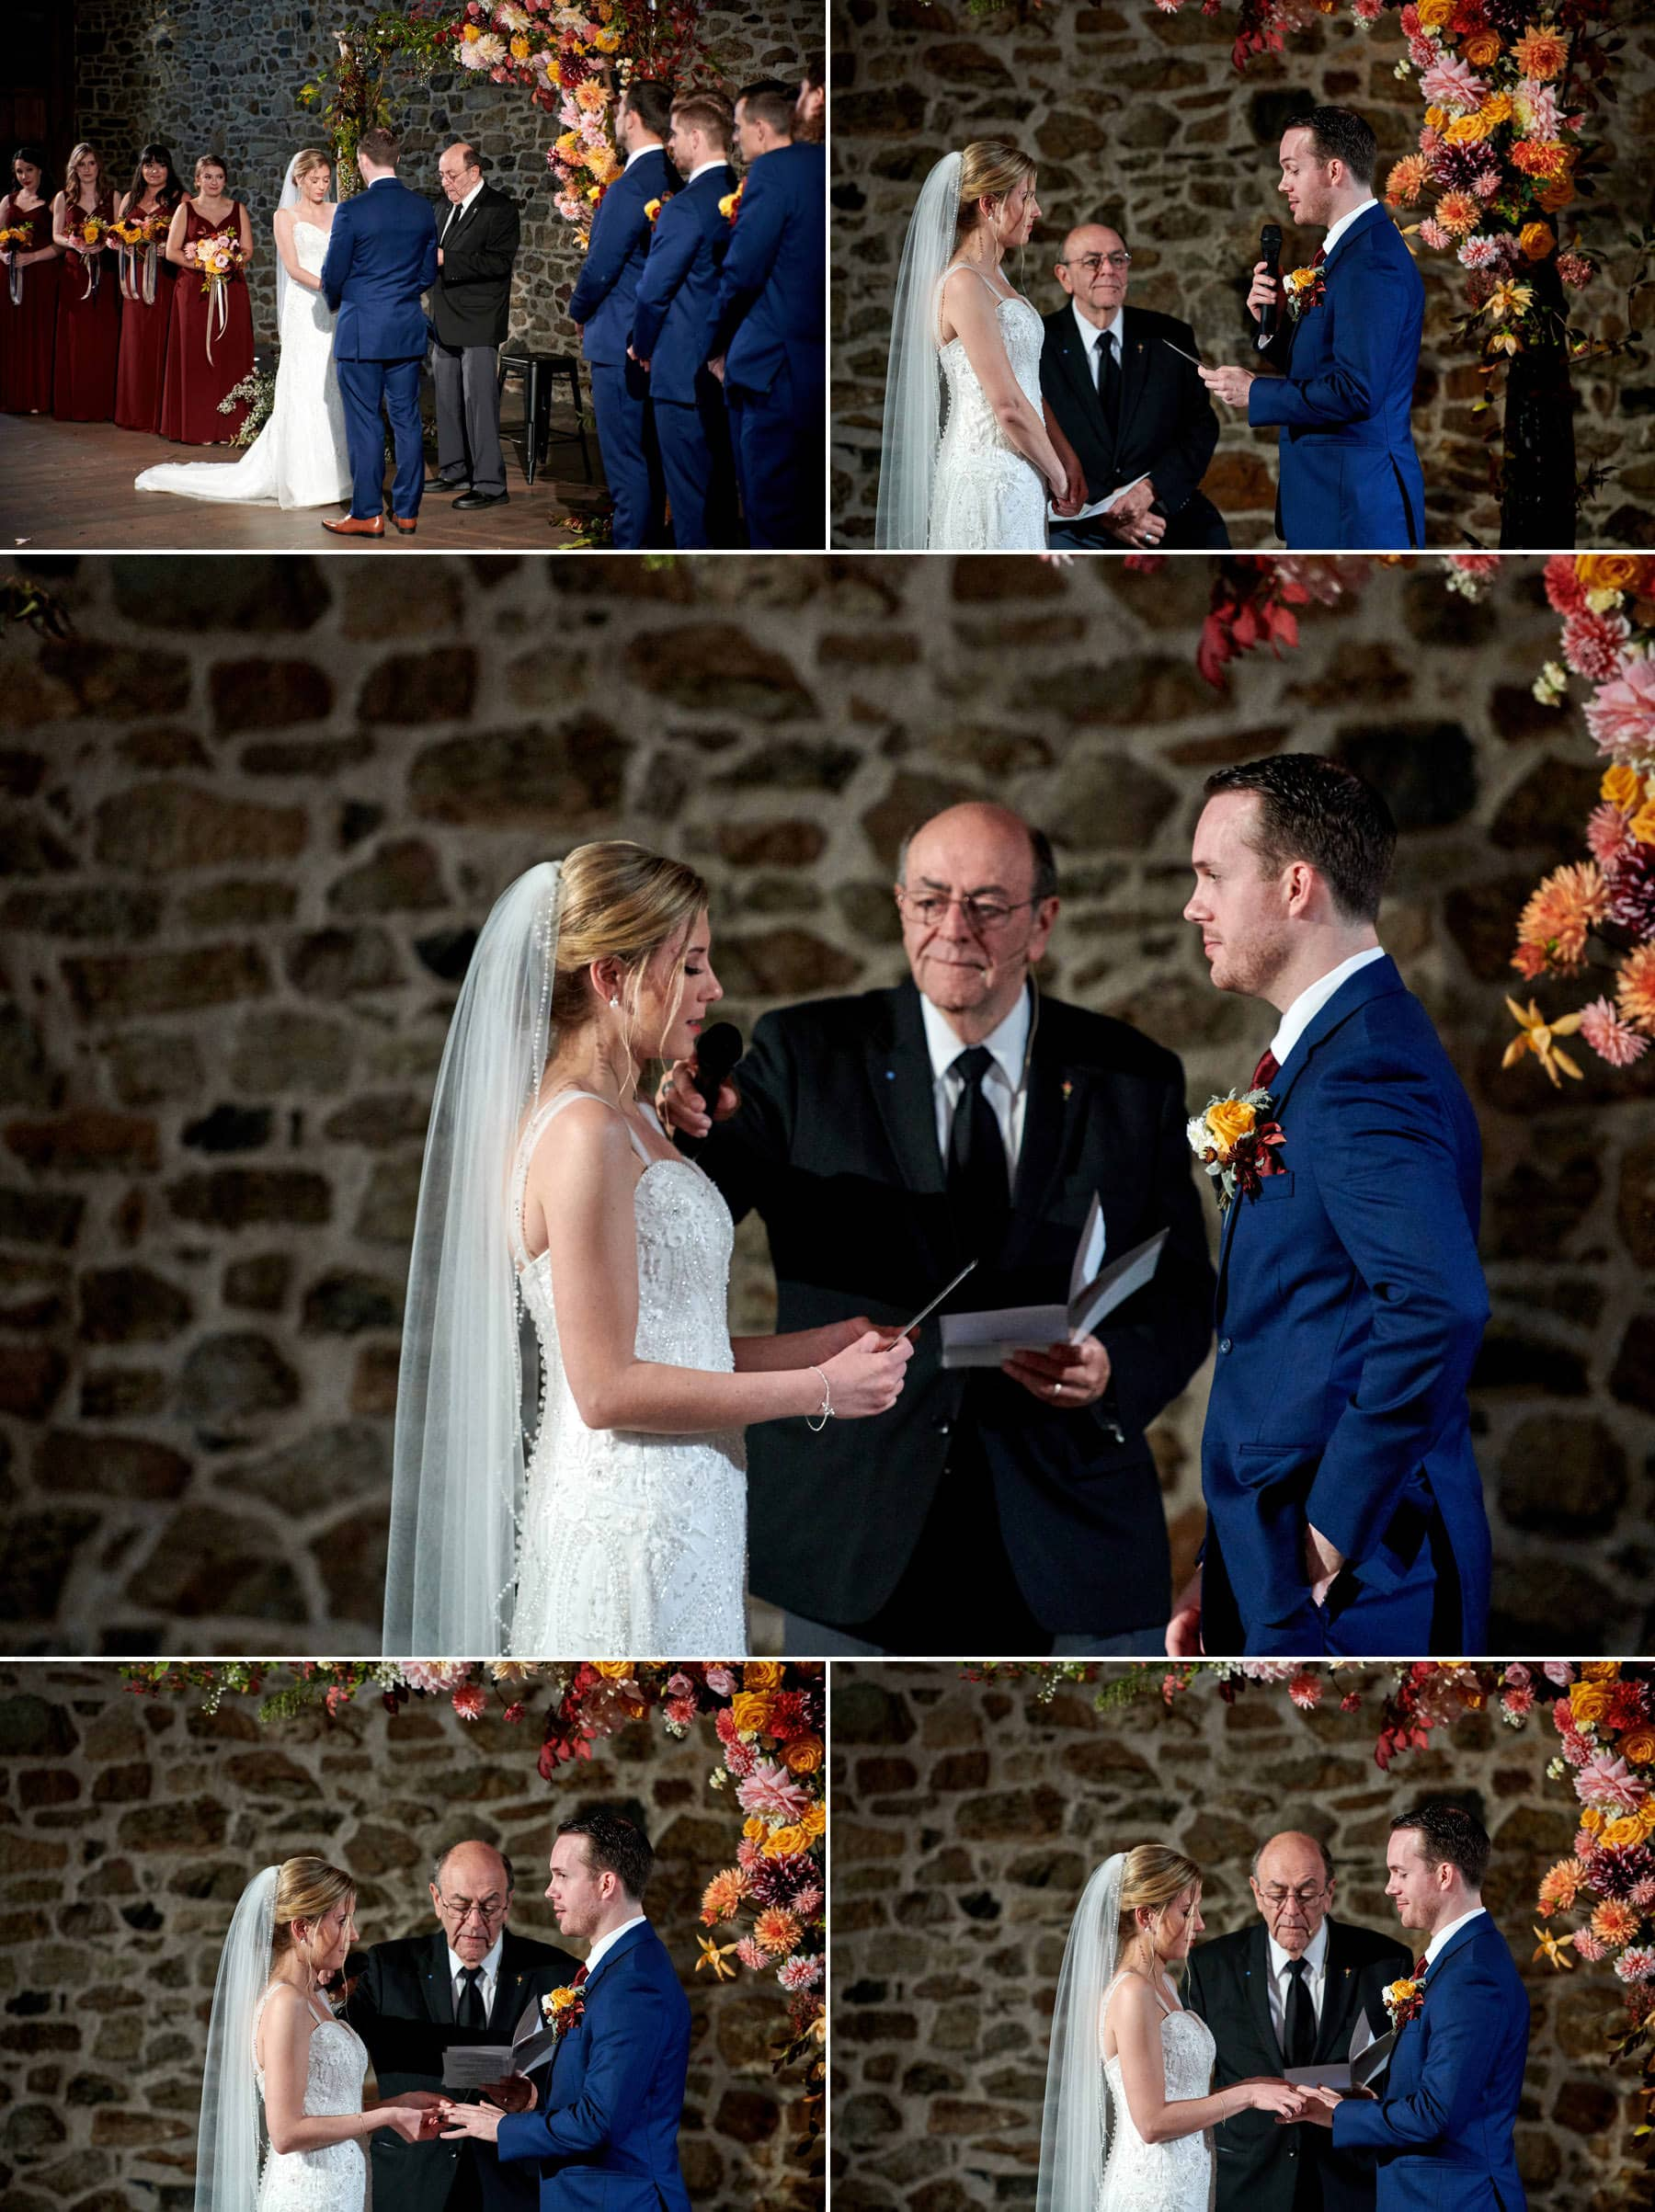 French Creek Golf Club indoor ceremony photos